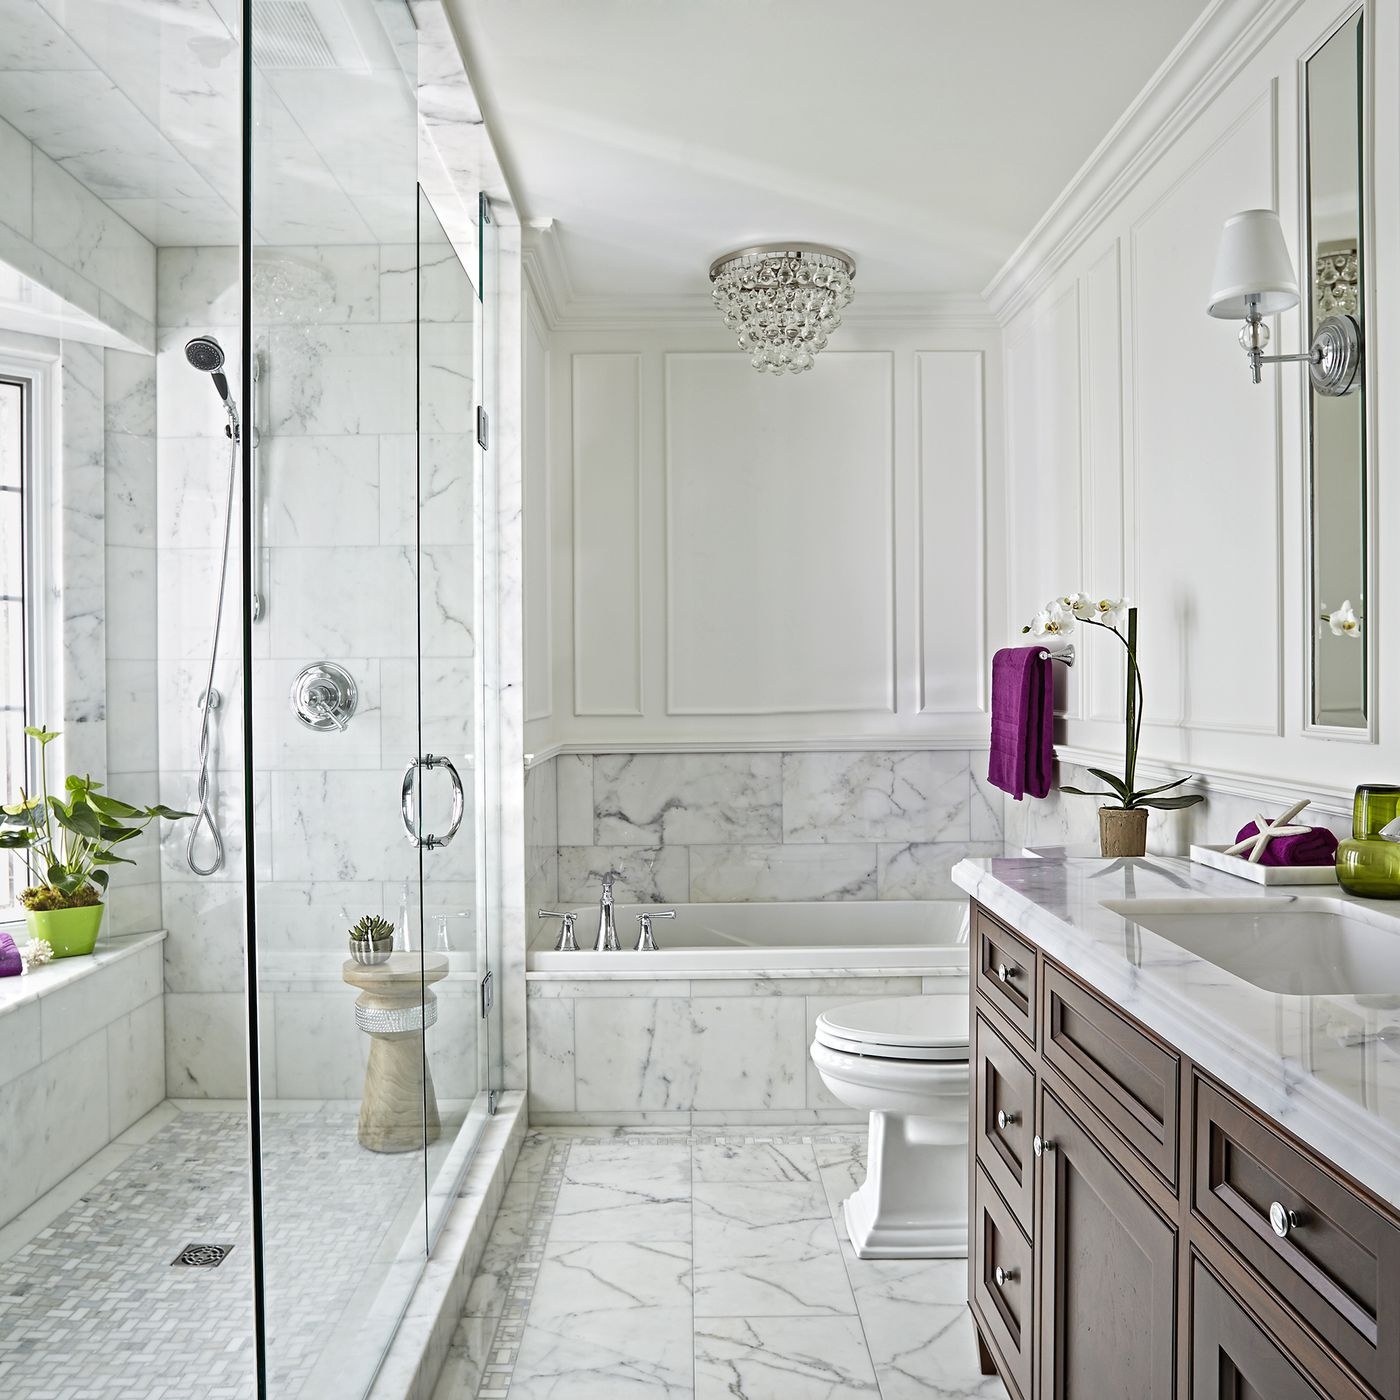 Redoing Your Bathroom? Read This! - This Old House